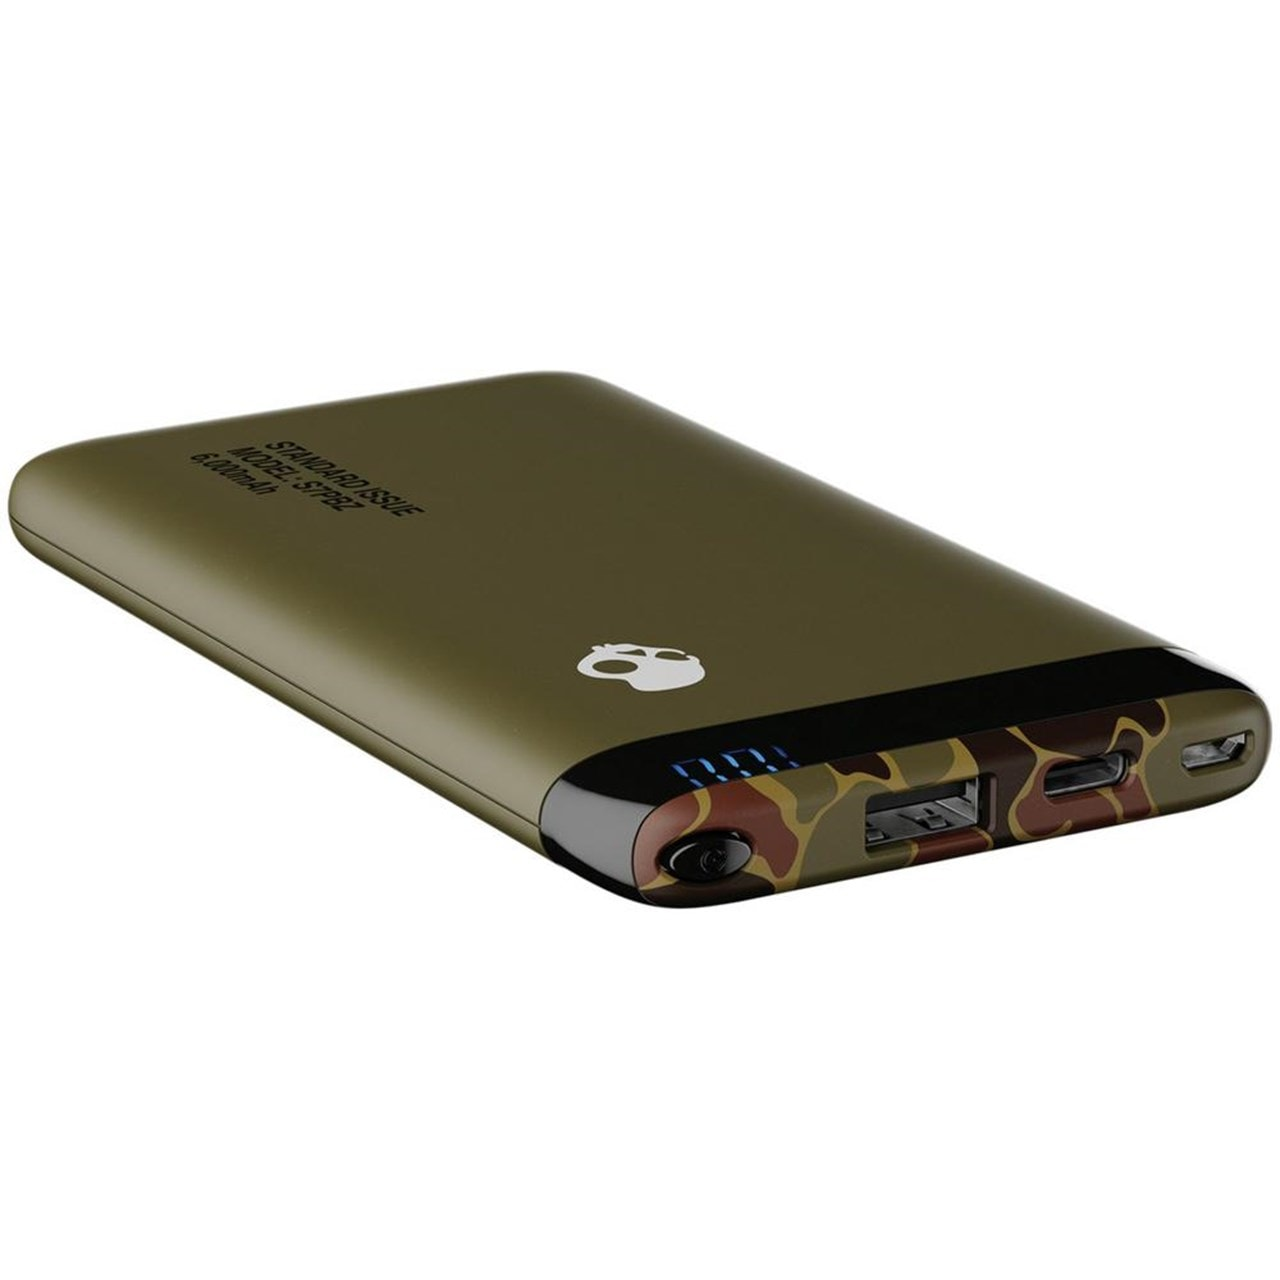 Skullcandy Stash Standard Issue (Camo) 6000mAh Power Bank - 2